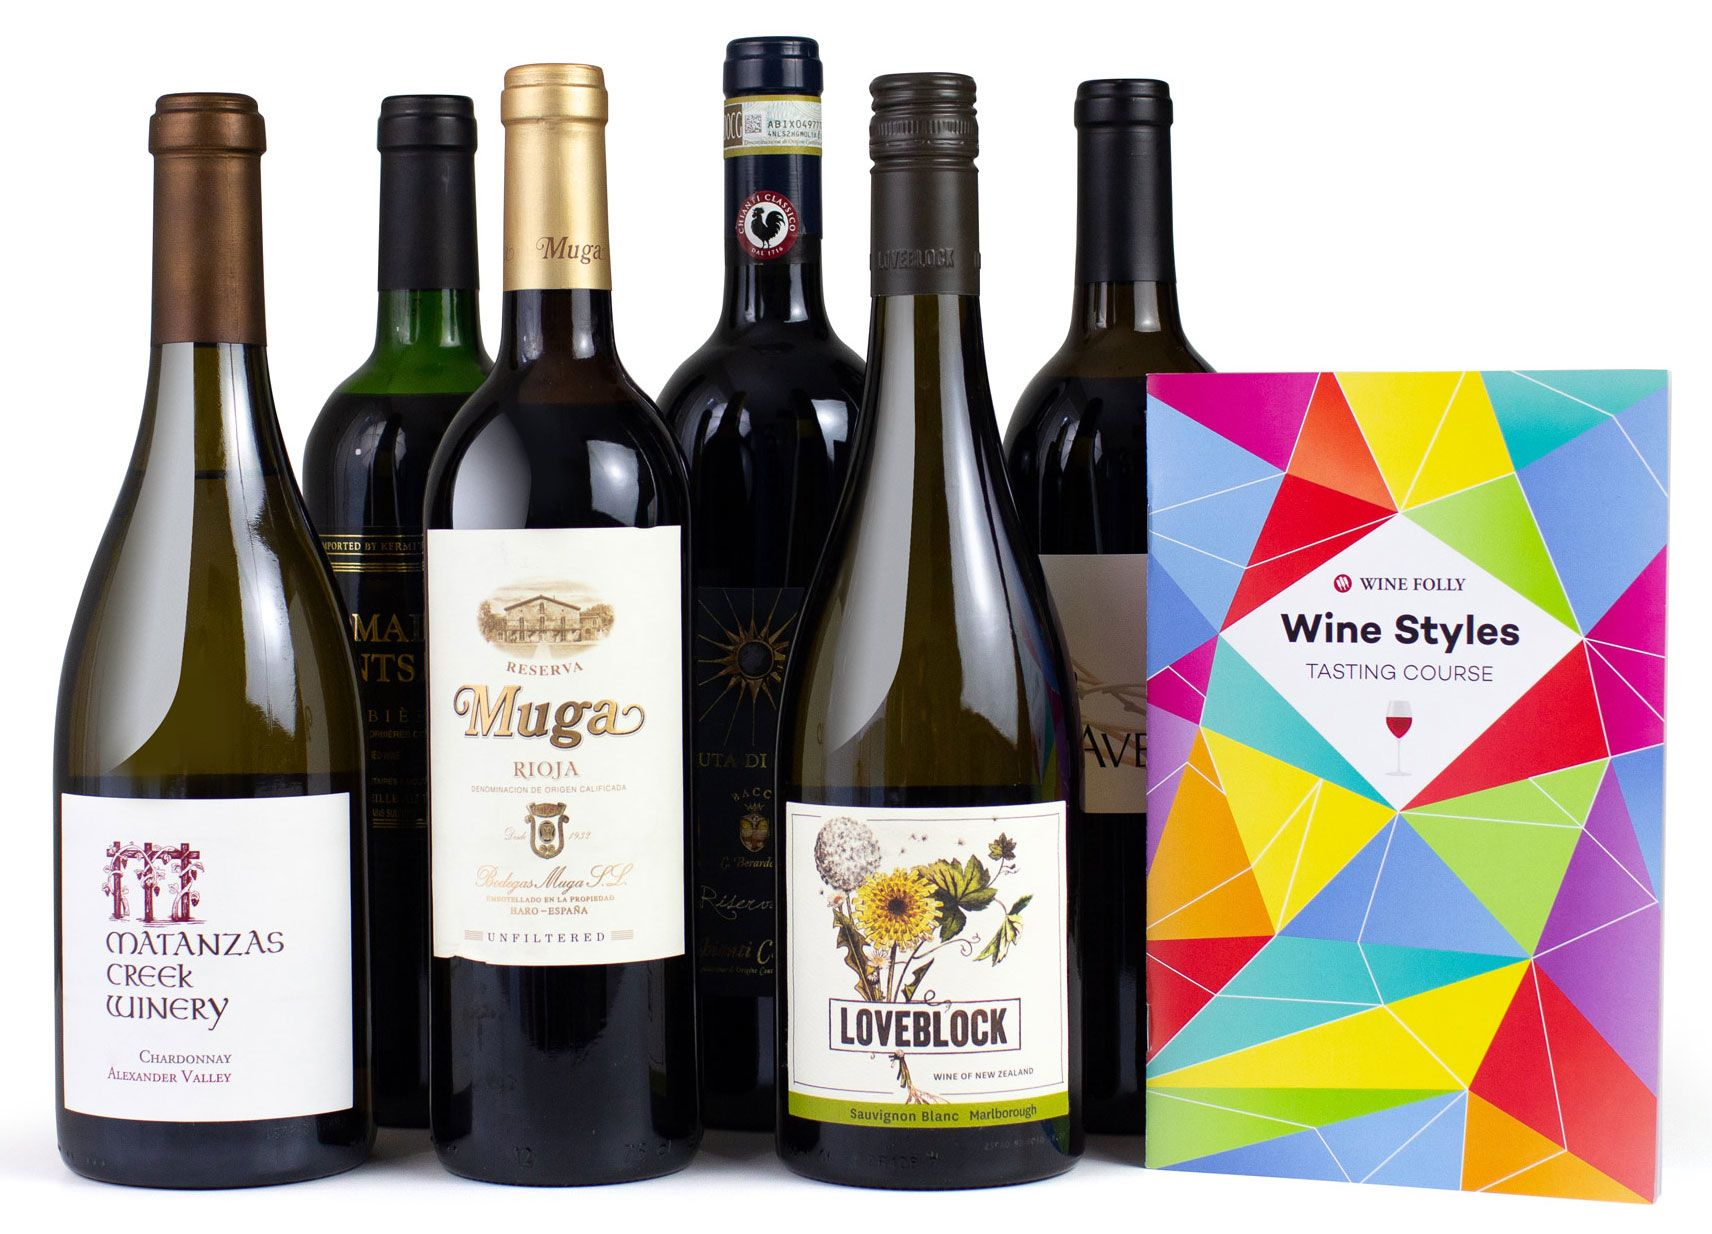 wine.com Wine Folly 6-Bottle Wine Styles Tasting Course  Gift Product Image